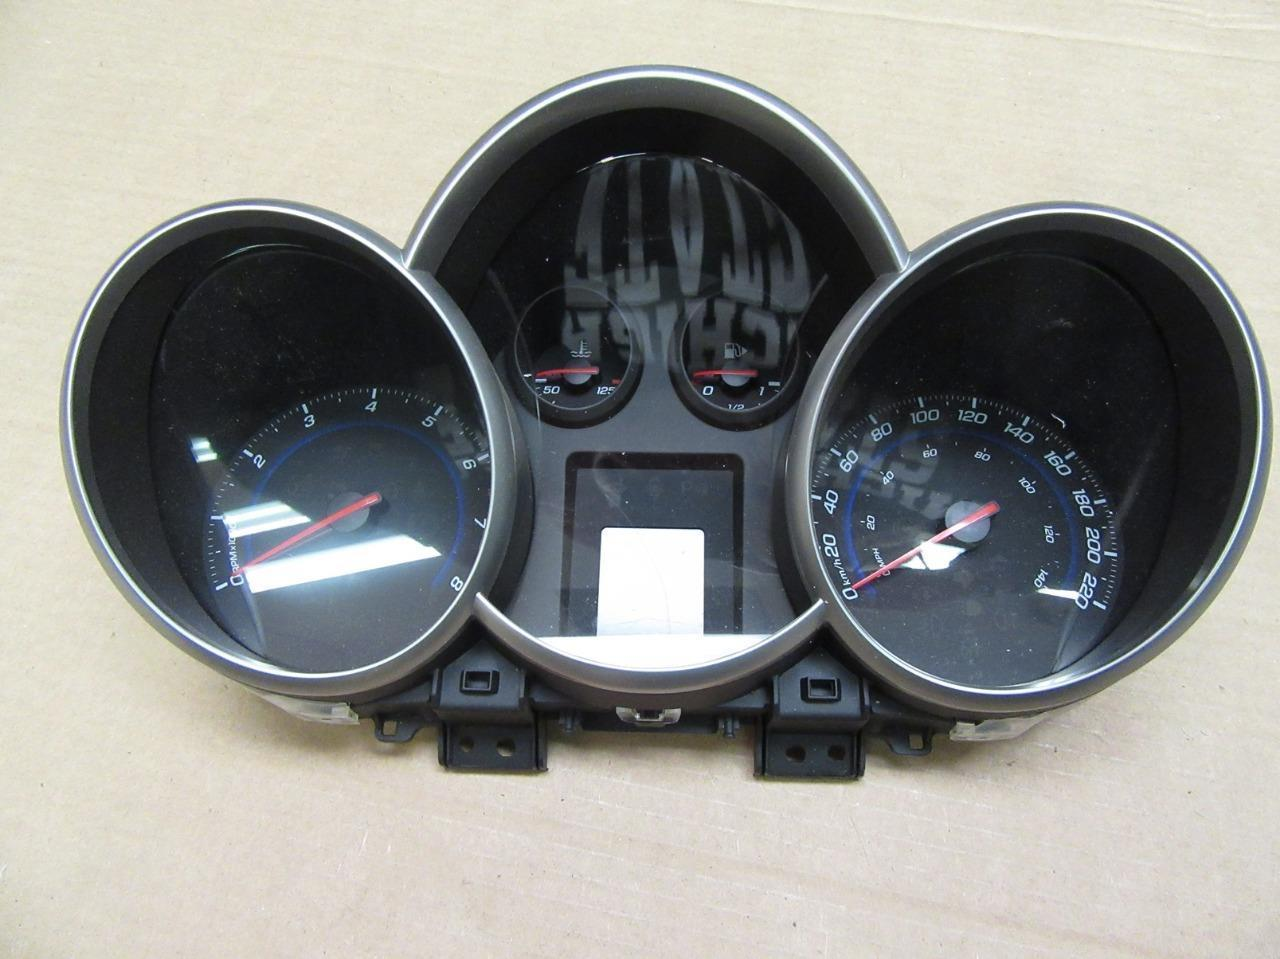 Primary image for OEM 2012 Chevy Cruze Instrument Cluster KPH Metric Kilometers Canada 95487985